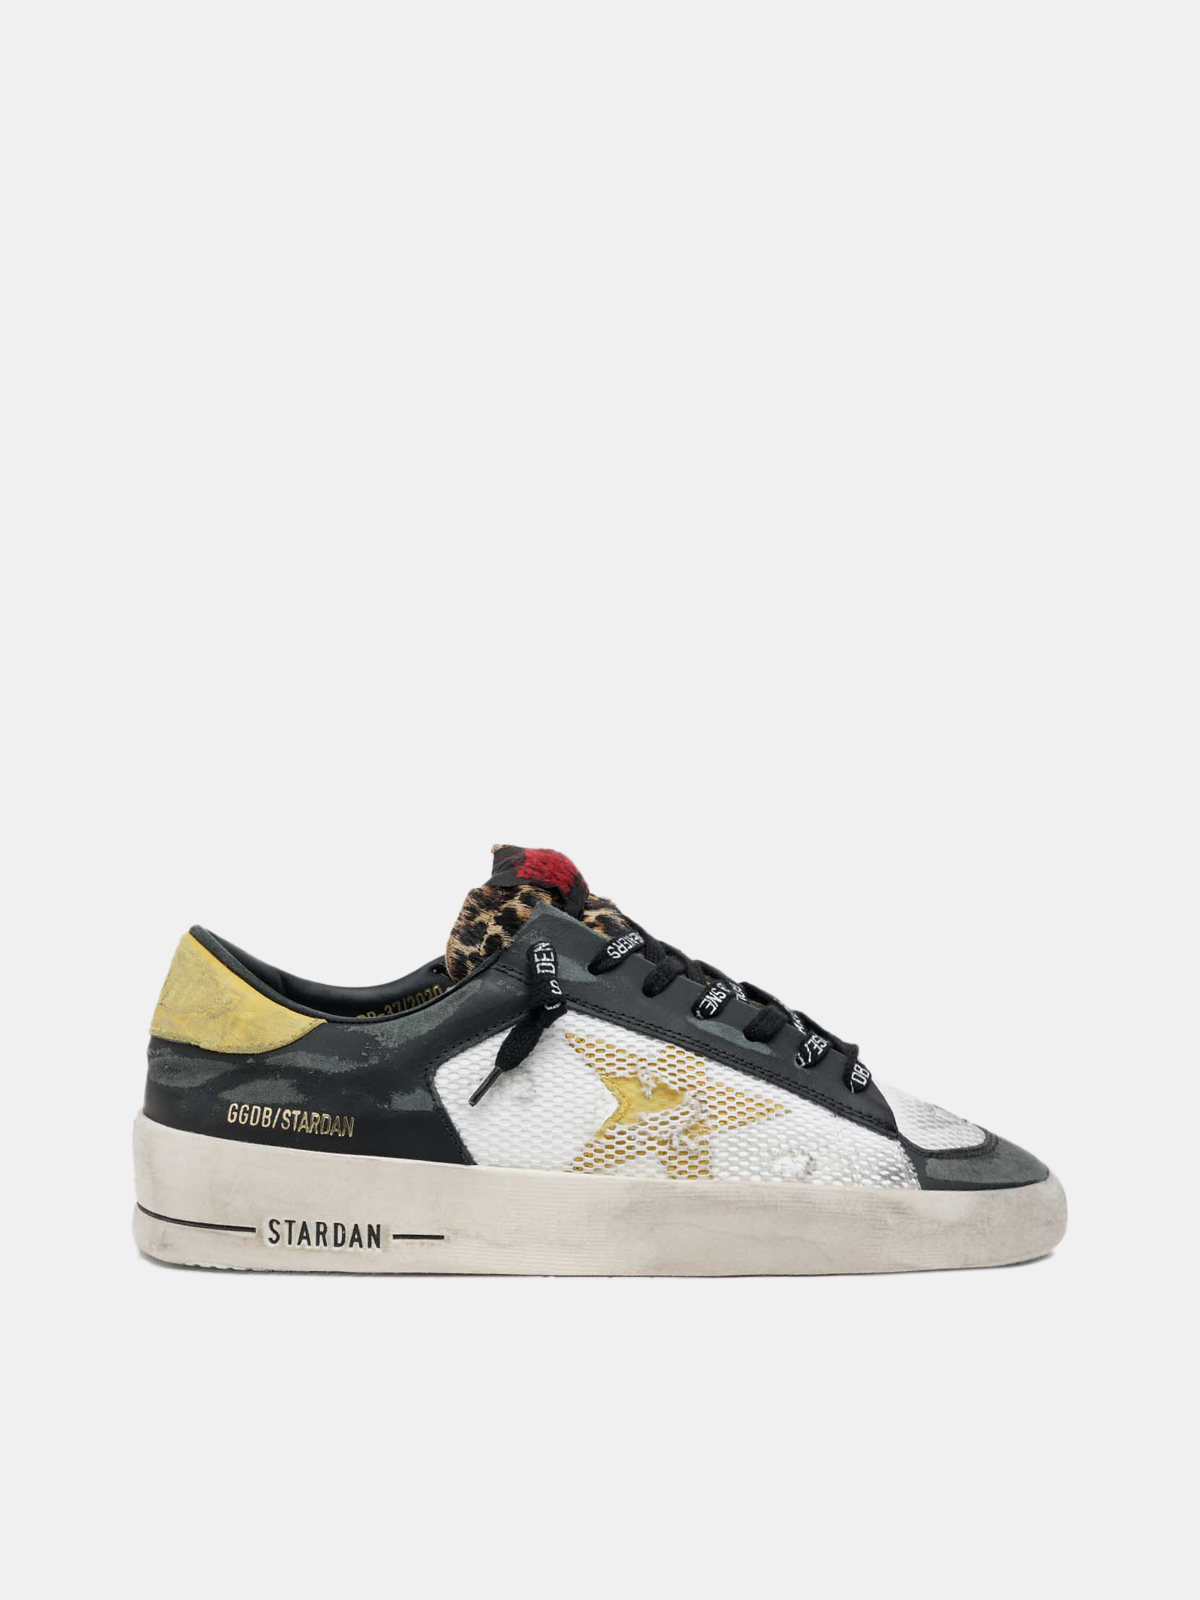 Golden Goose - Stardan sneakers with leopard-print pony skin tongue in